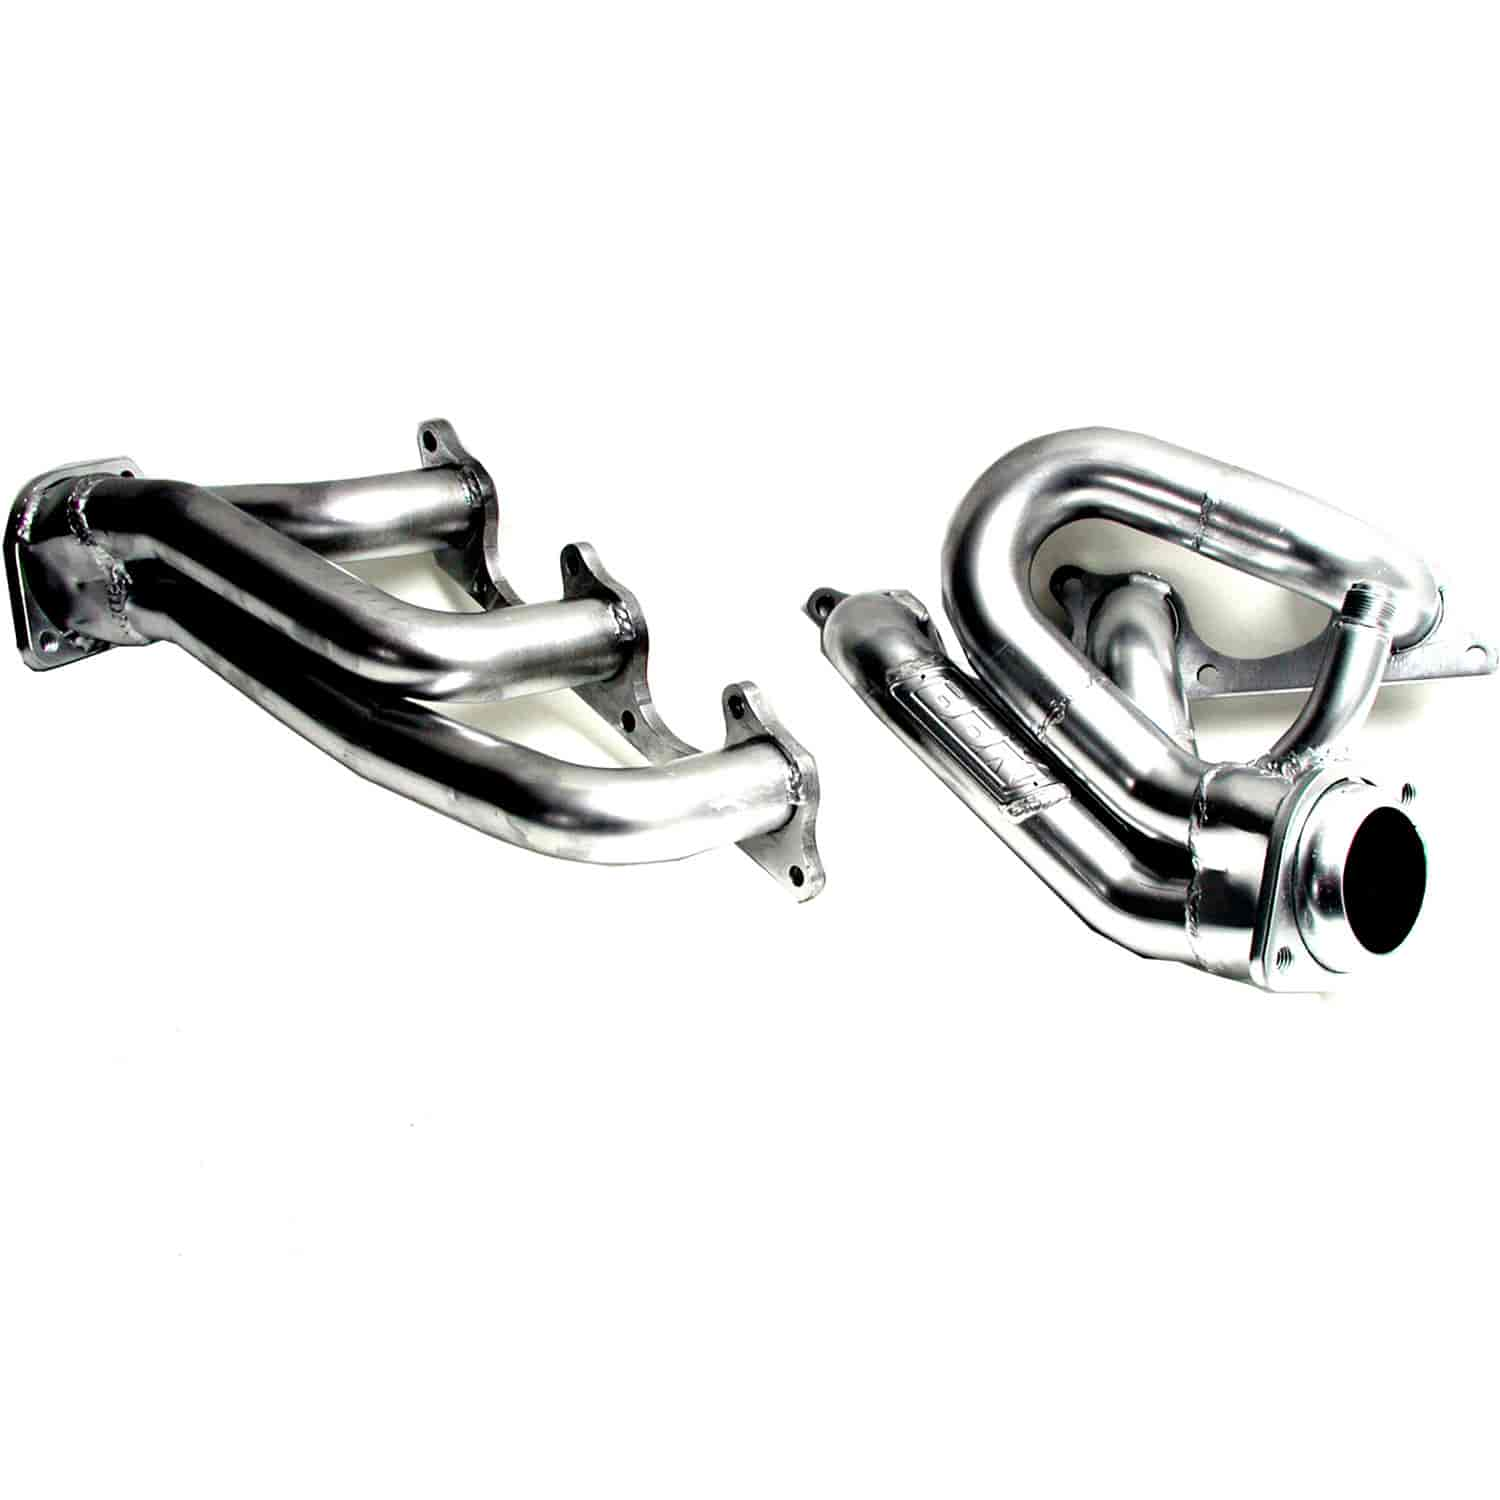 Bbk Performance Parts Tuned Length Shorty Headers Mustang 4 0l V6